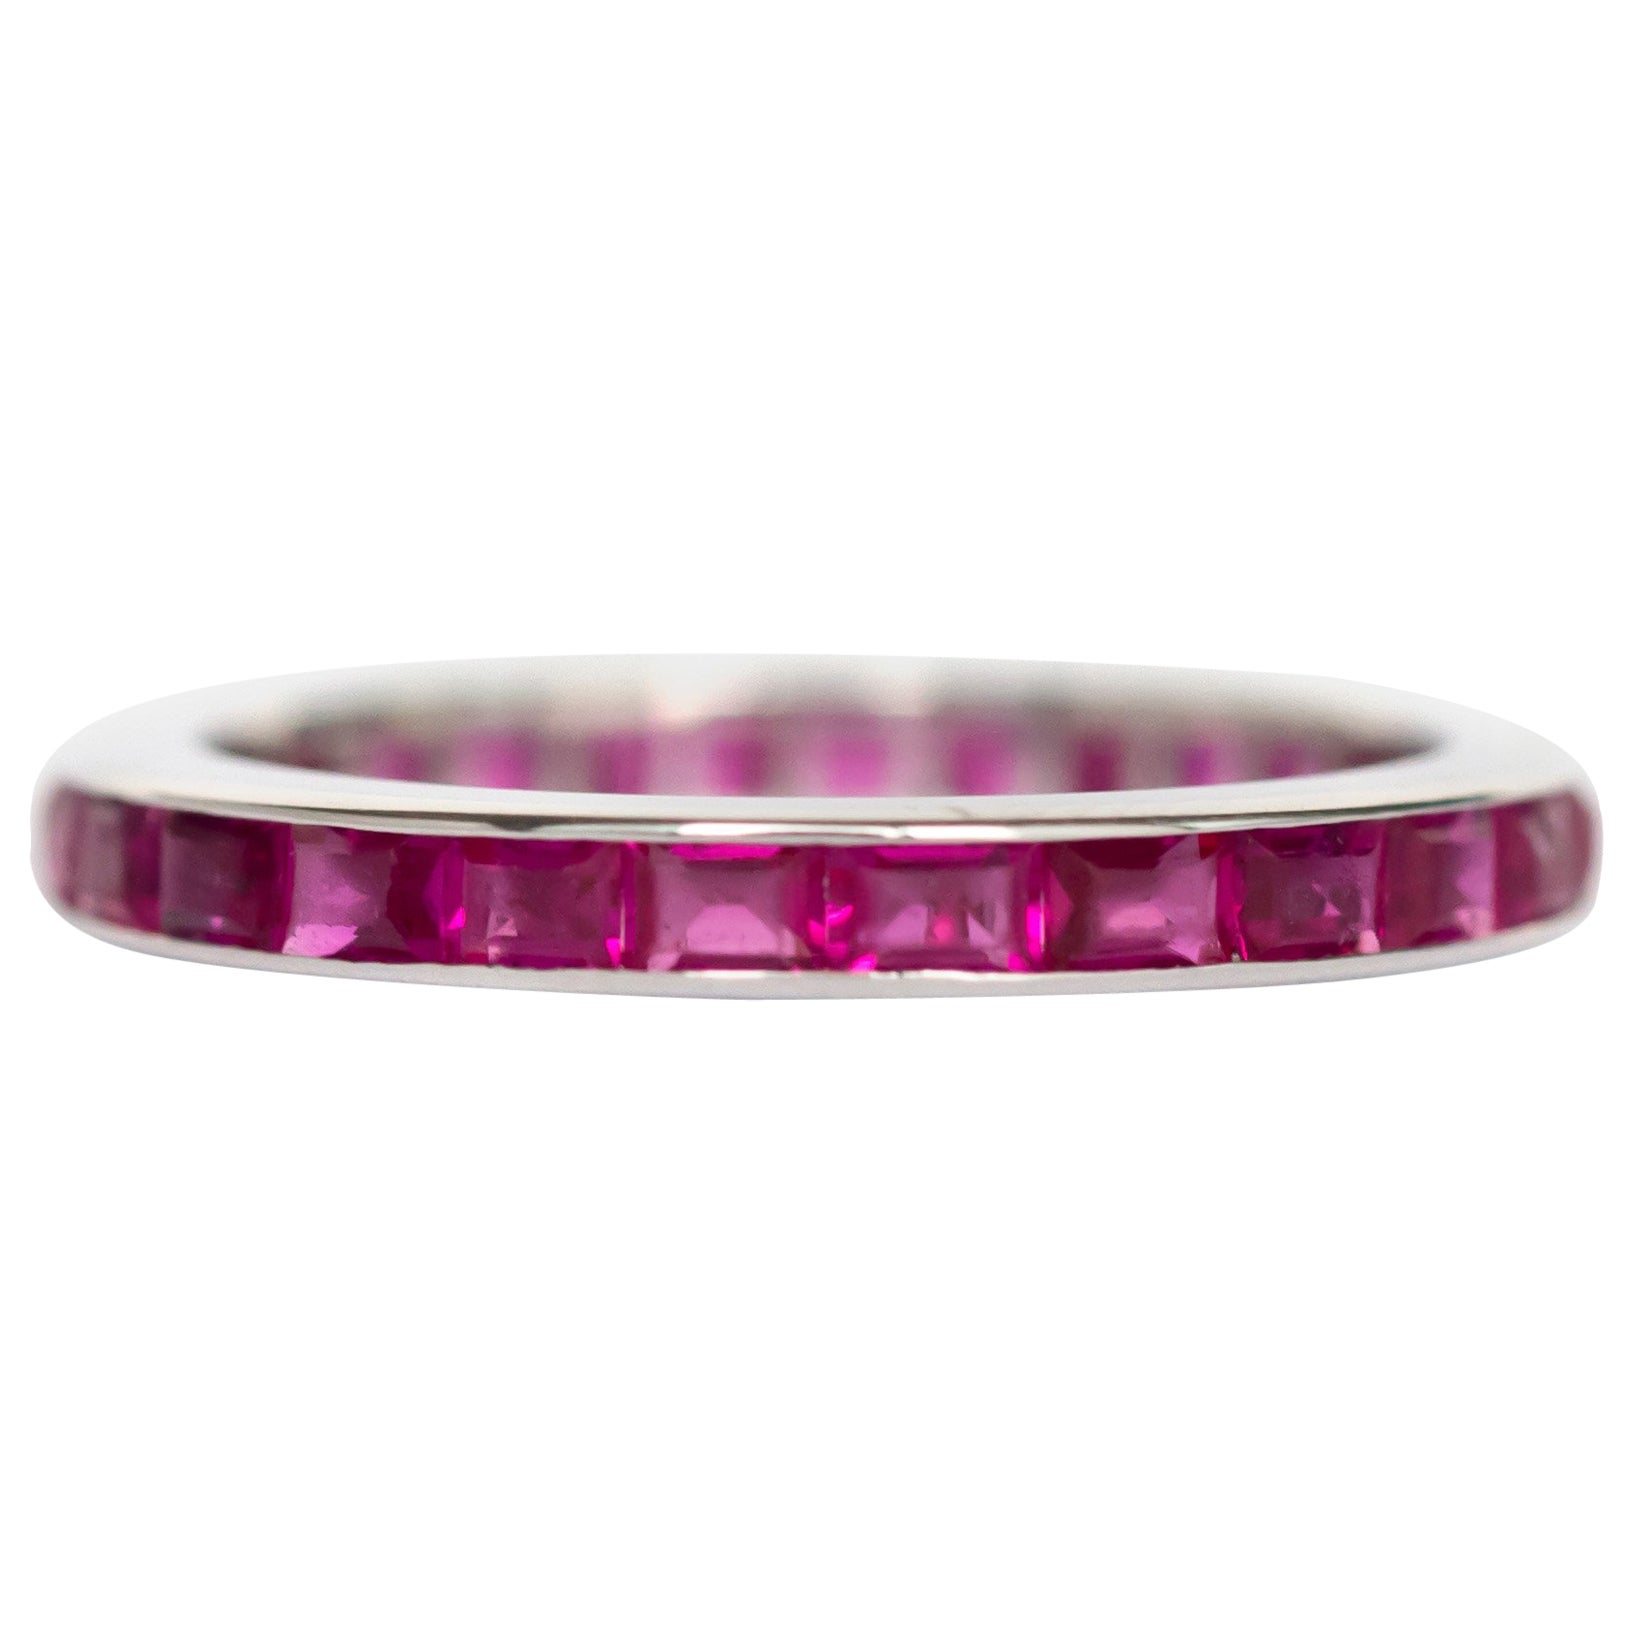 1950s 1.00 Carat, Total Weight Ruby & 14K White Gold Wedding Band